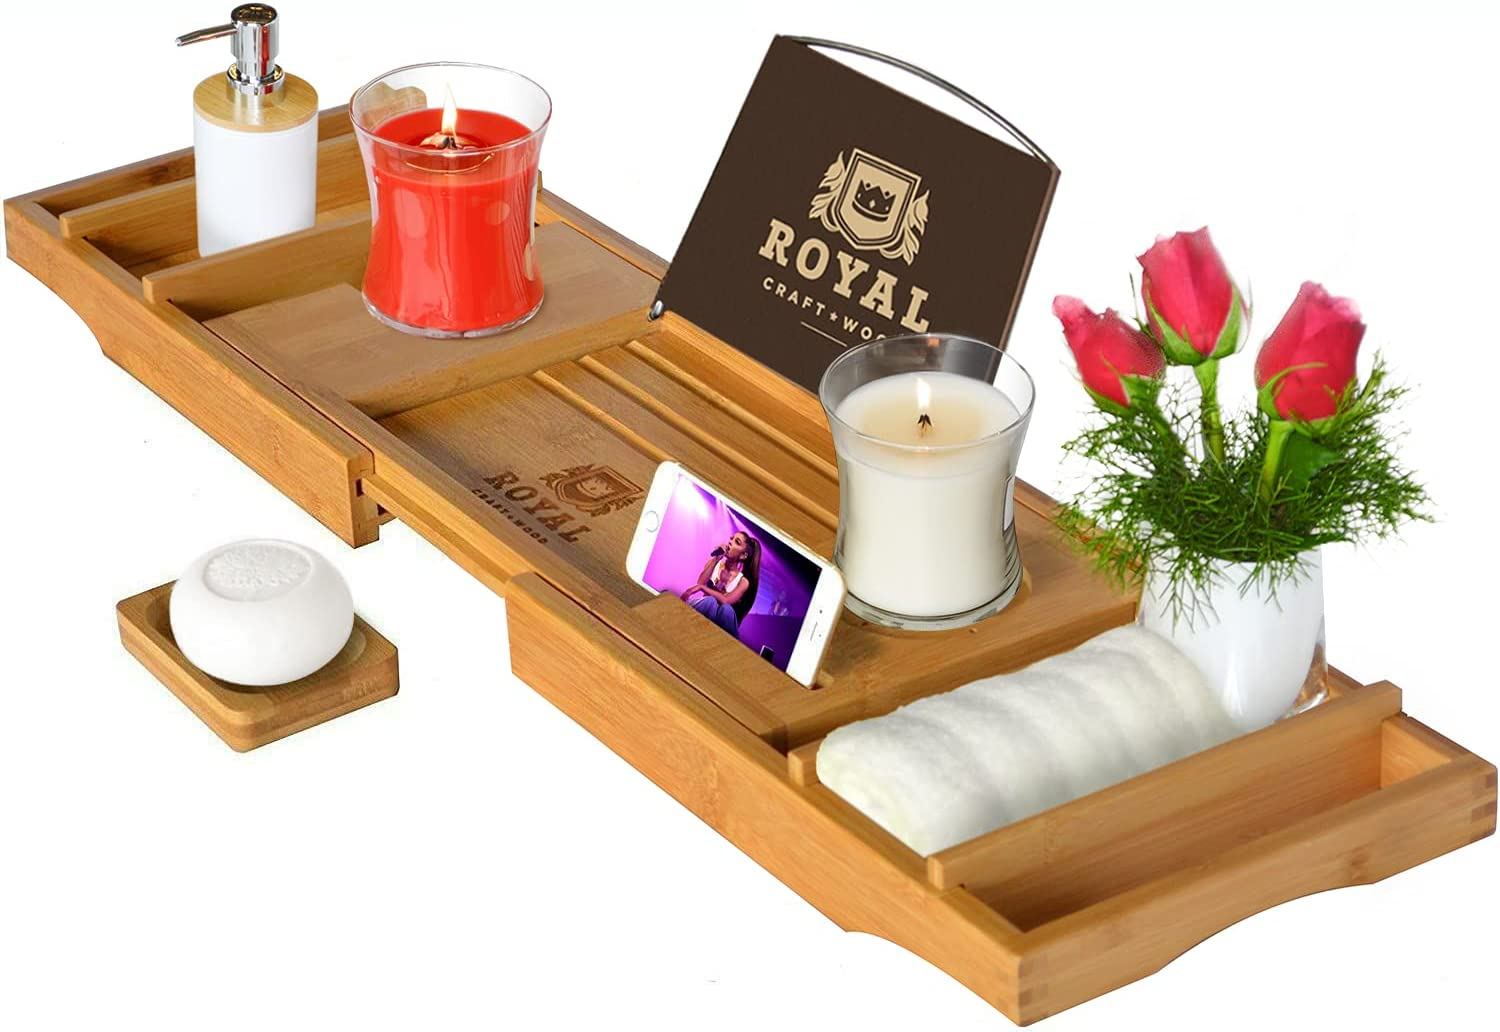 ROYAL CRAFT WOOD Luxury Bathtub Caddy Tray, One or Two Person Bath and Bed Tray, Bonus Free Soap Holder (Natural): Home & Kitchen